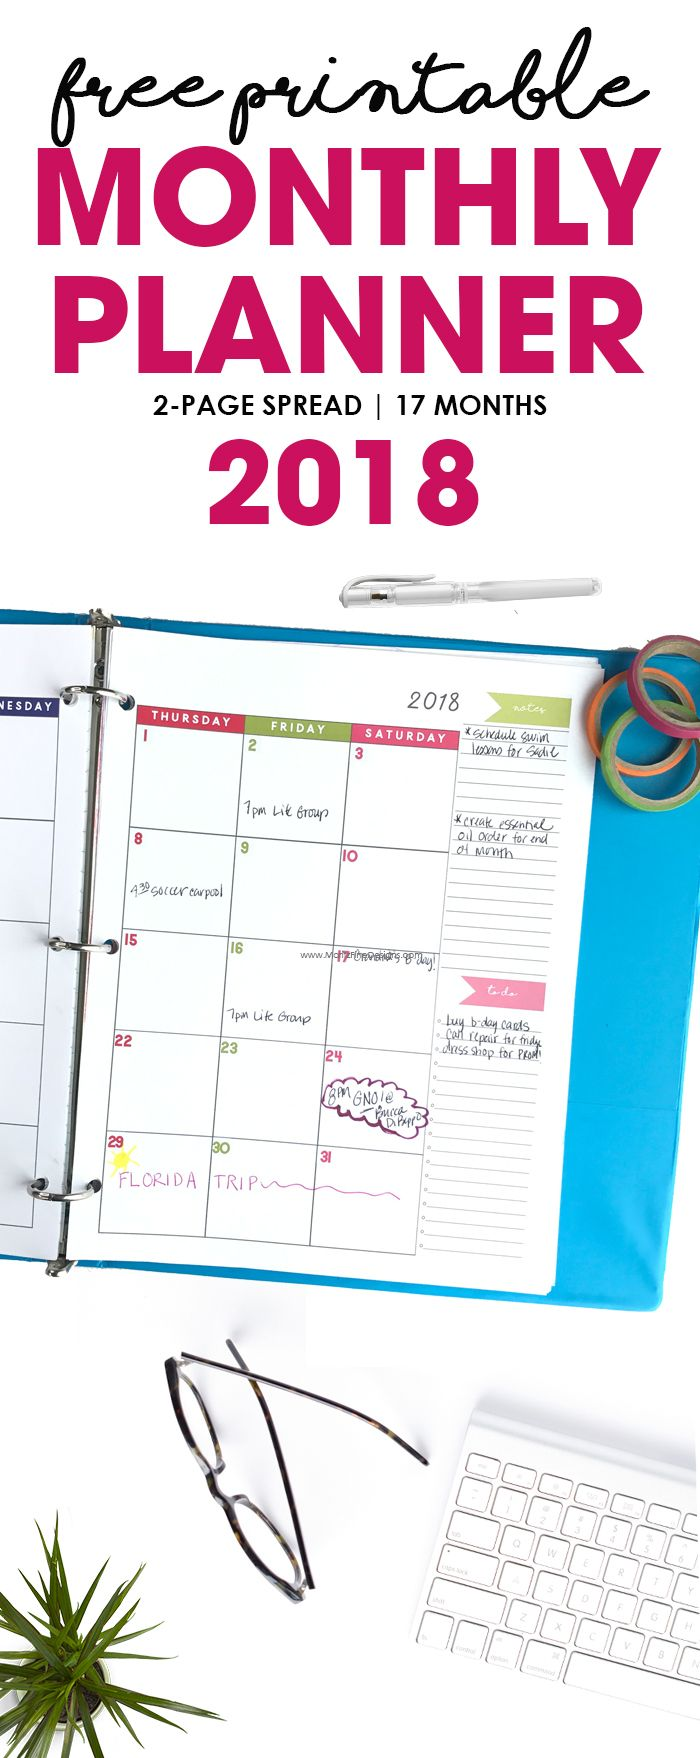 The free printable 2018 Monthly Planner Calendar is a simple 2-page spread that offers plenty of writing space and a section for notes and a to-do list. Easy to download and print at home ! #freeprintablecalendar #2018monthlyplanner #calendarideas #calendarprintables2018 via @moritzdesigns